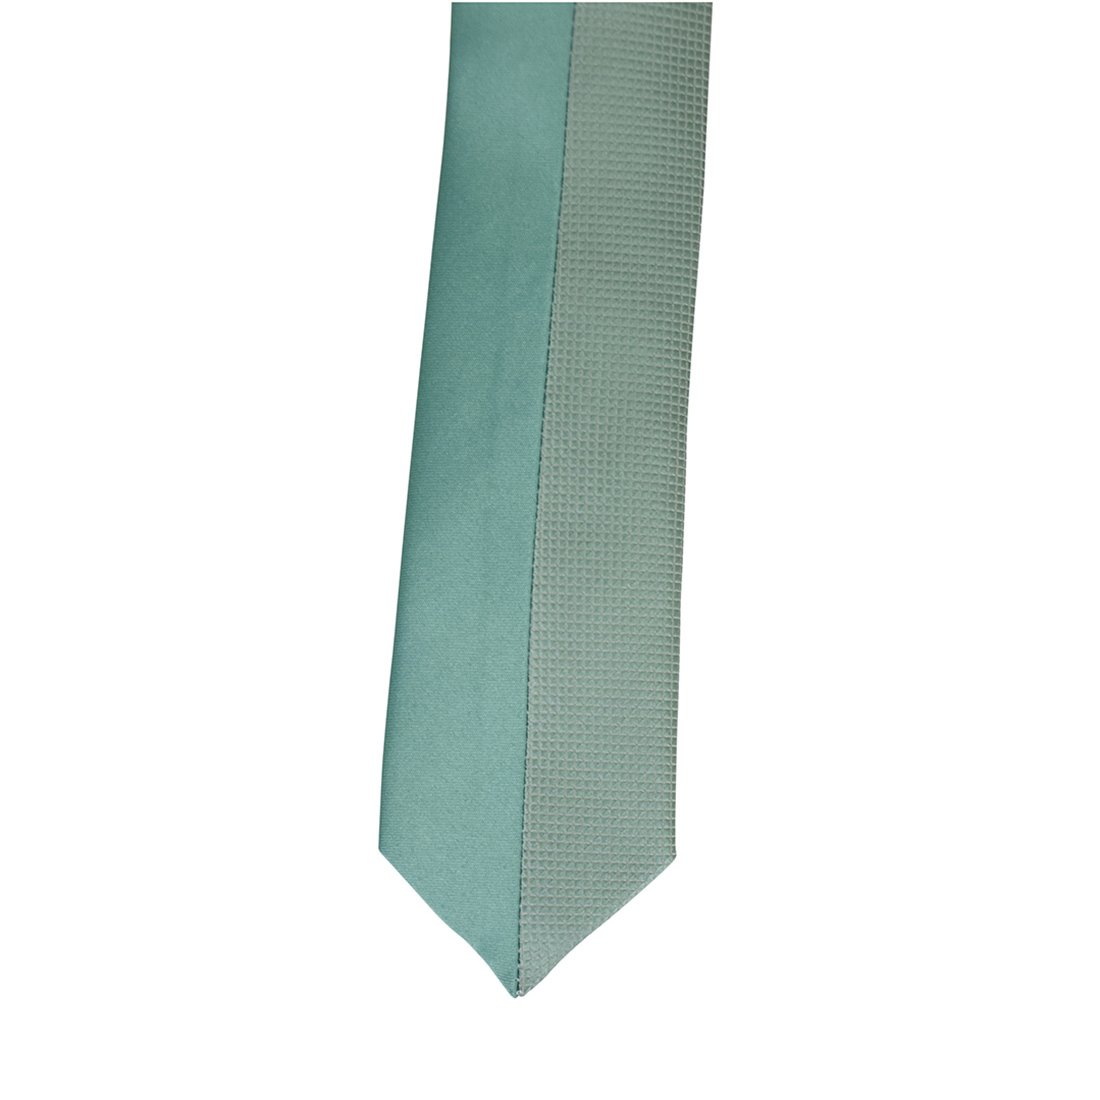 Textured Satin Youth Tie Junior Necktie Boys Tie agyt-yt07-moss